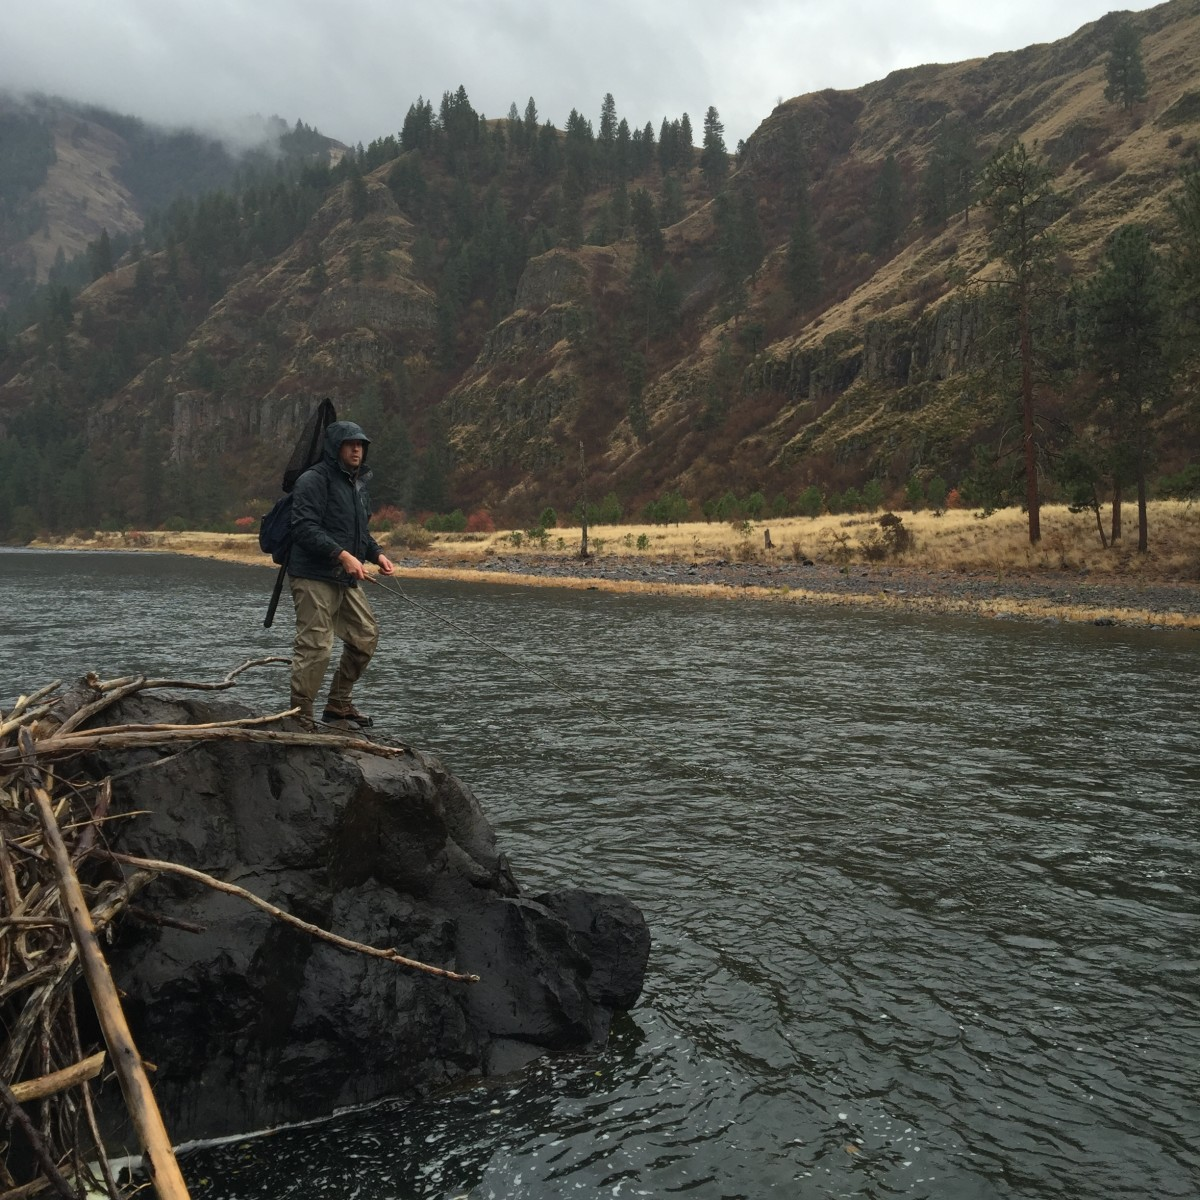 A dark, drizzly, sleety day on the Grande Ronde River. Perfect...